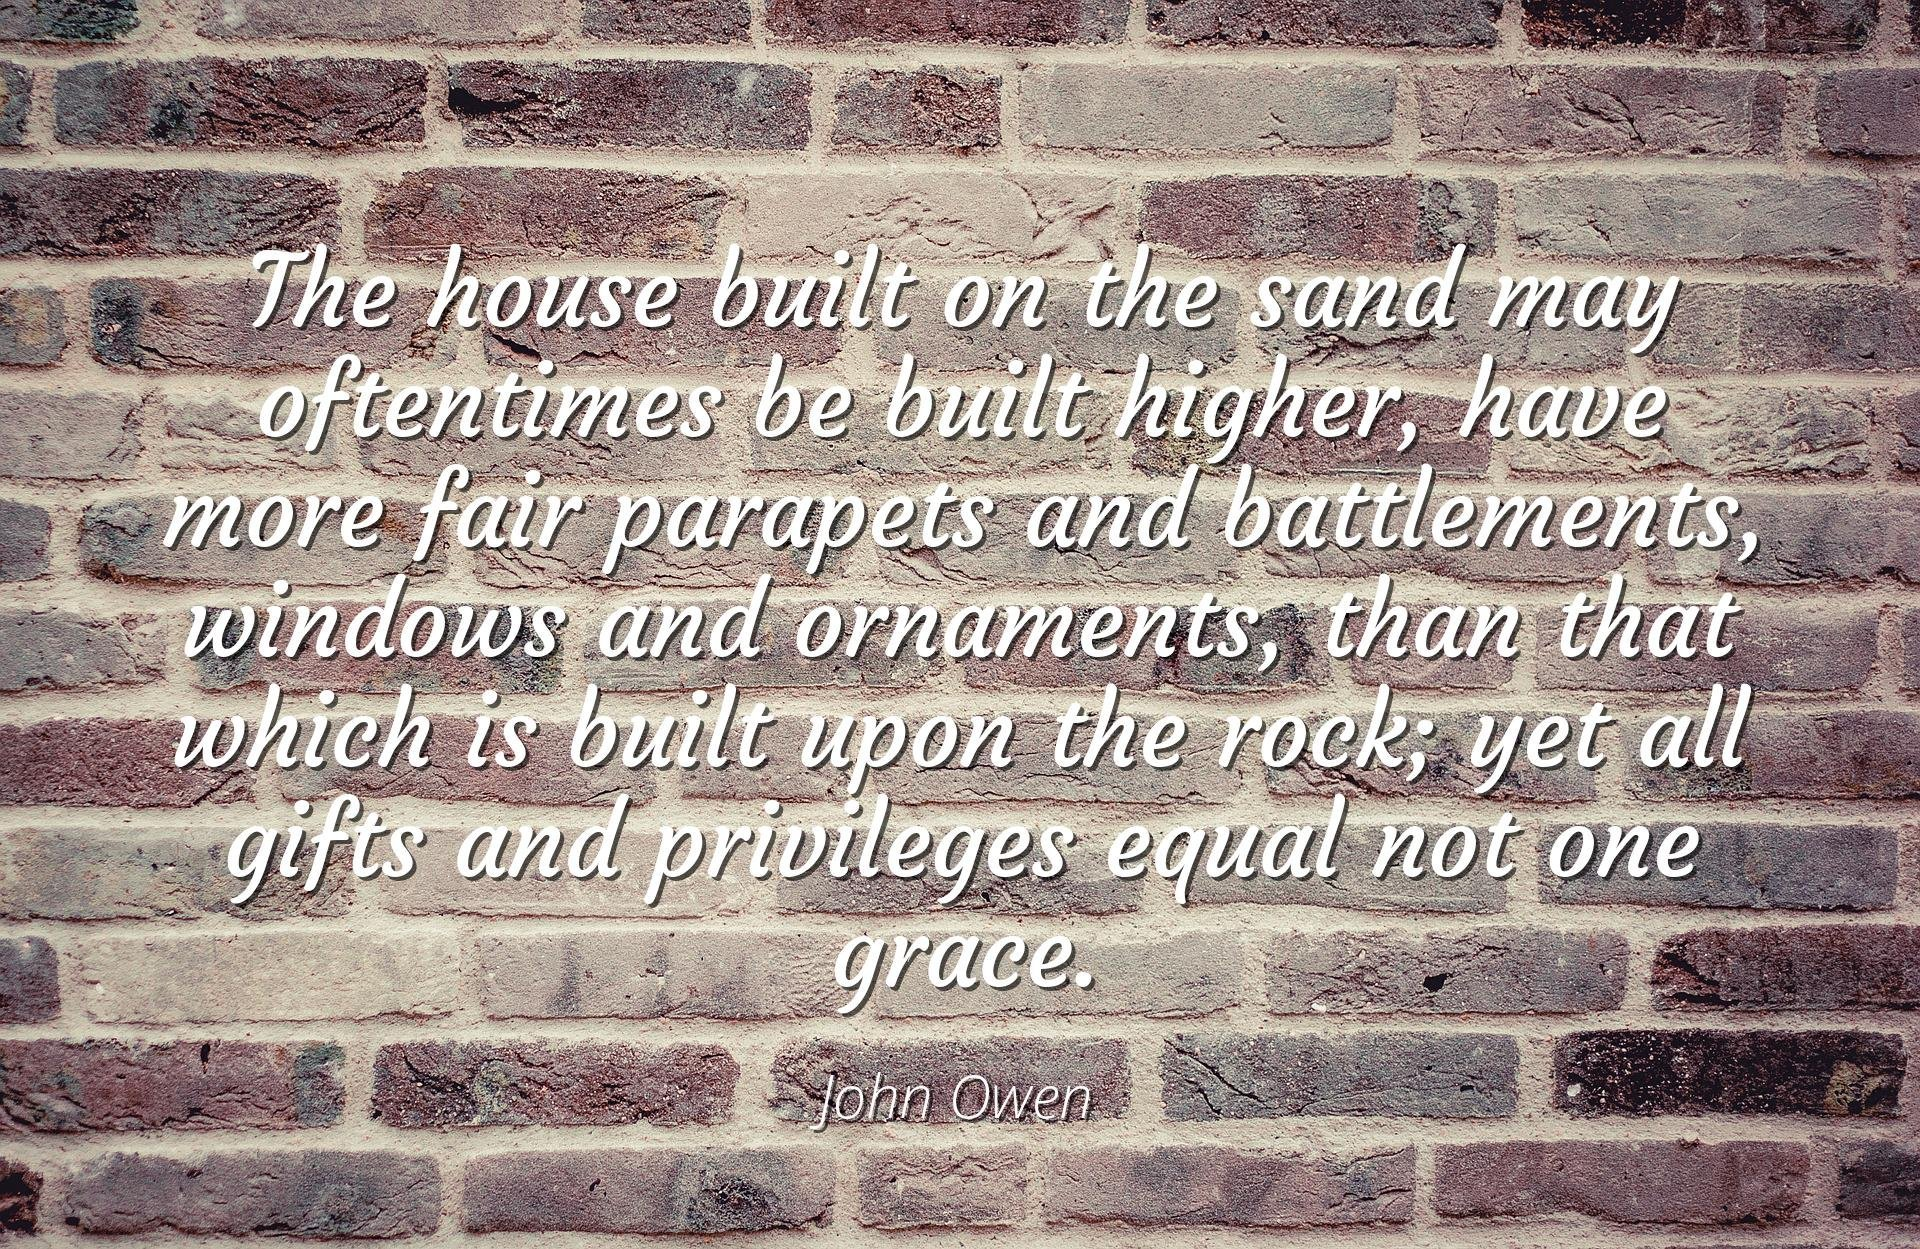 John Owen - Famous Quotes Laminated POSTER PRINT 24x20 - The house built on the sand may oftentimes be built higher, have more fair parapets and battlements, windows and ornaments, than that which is